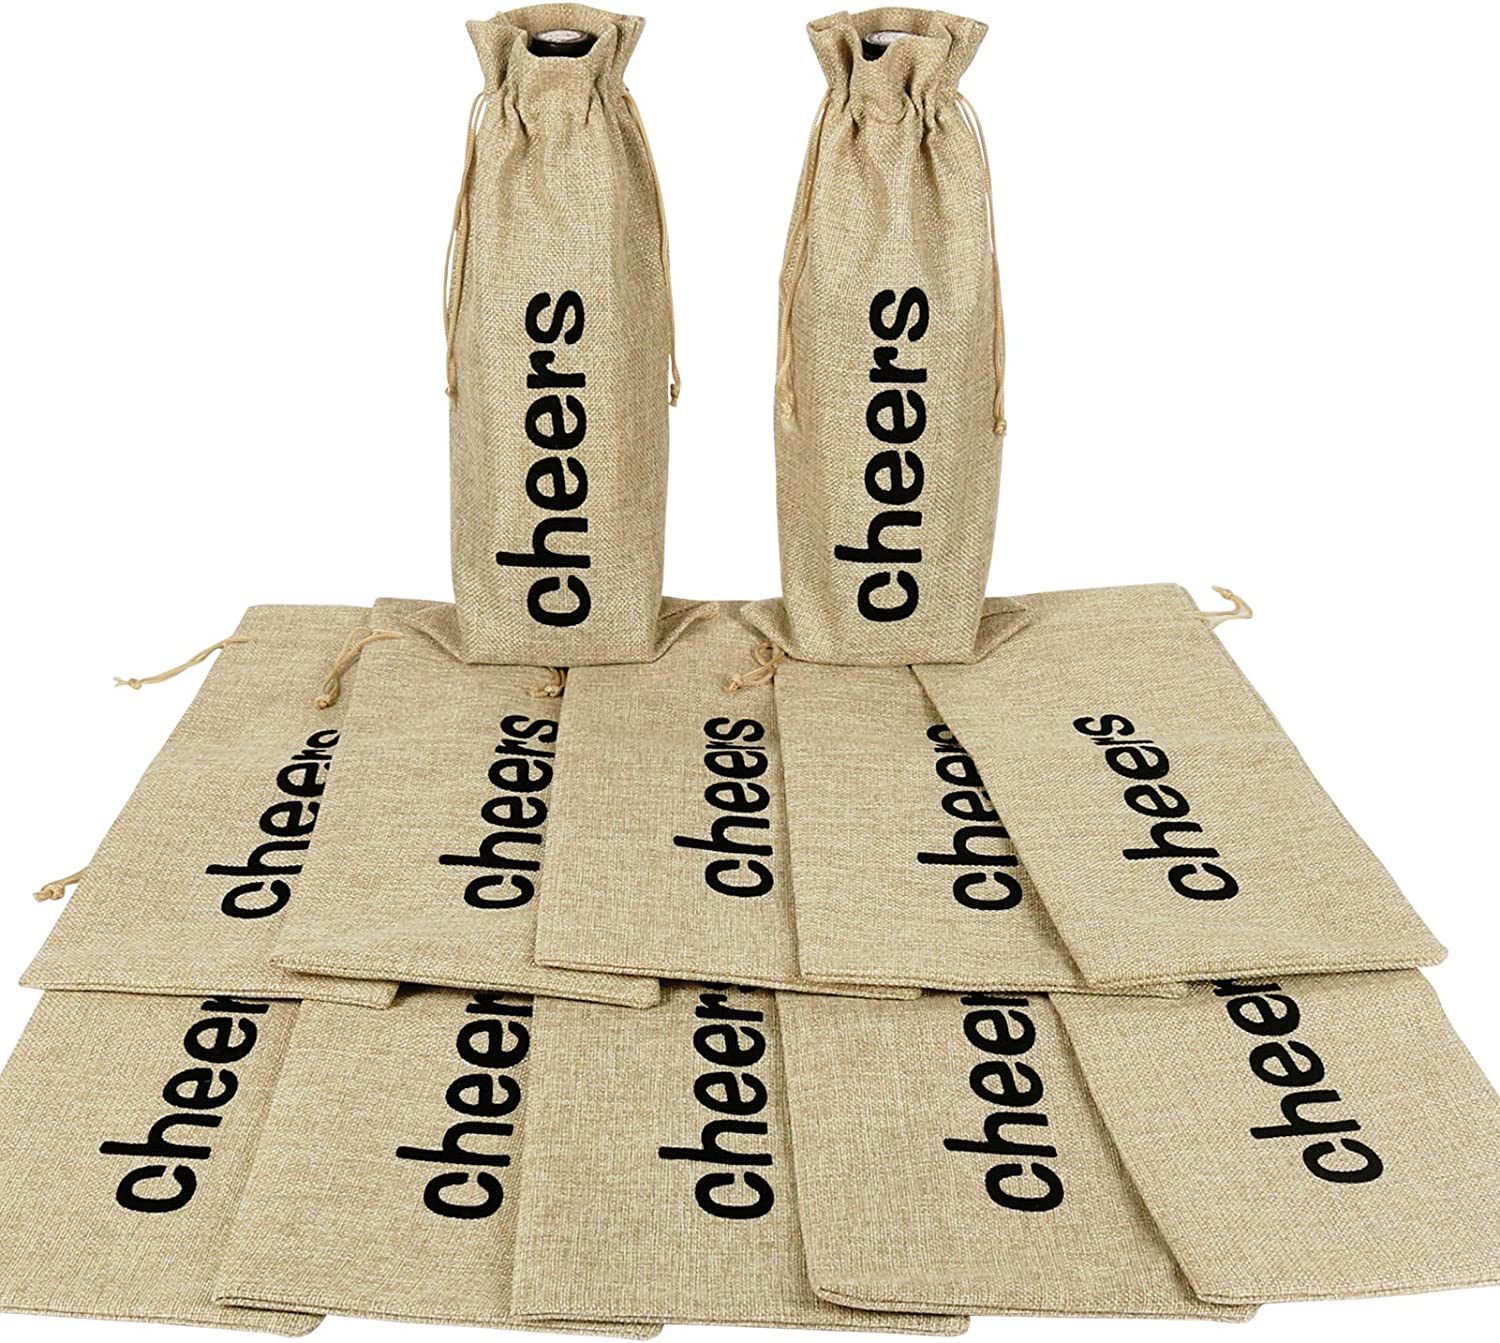 12pcs Cheers Burlap Wine Bags, Hessian Cloth Bottle Gift Bags with Drawstring for Christmas Holiday Champagne Wine Tasting Party